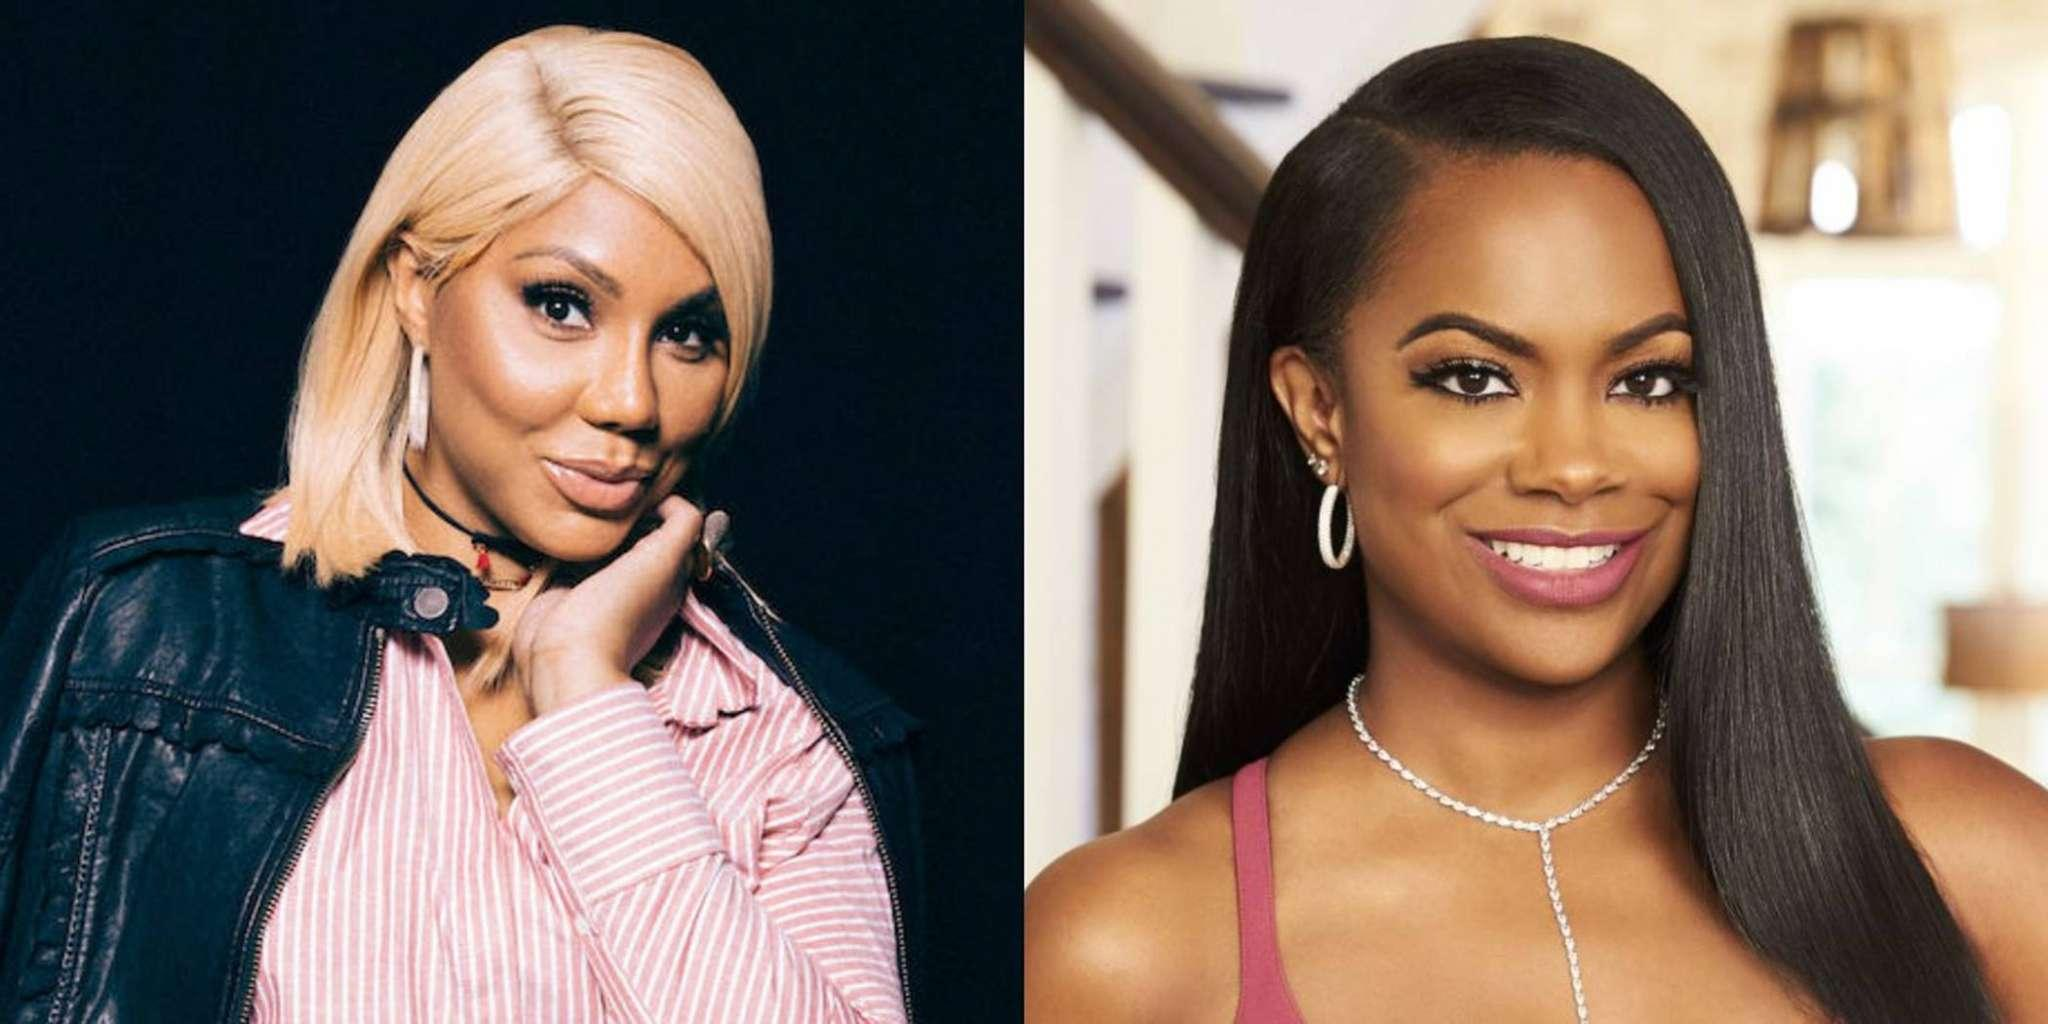 Tamar Braxton Has Meltdown After Kandi Burruss Laughs At Her Feelings -- Video Of Exchange Divides Fans Of Vincent Herbert's Wife